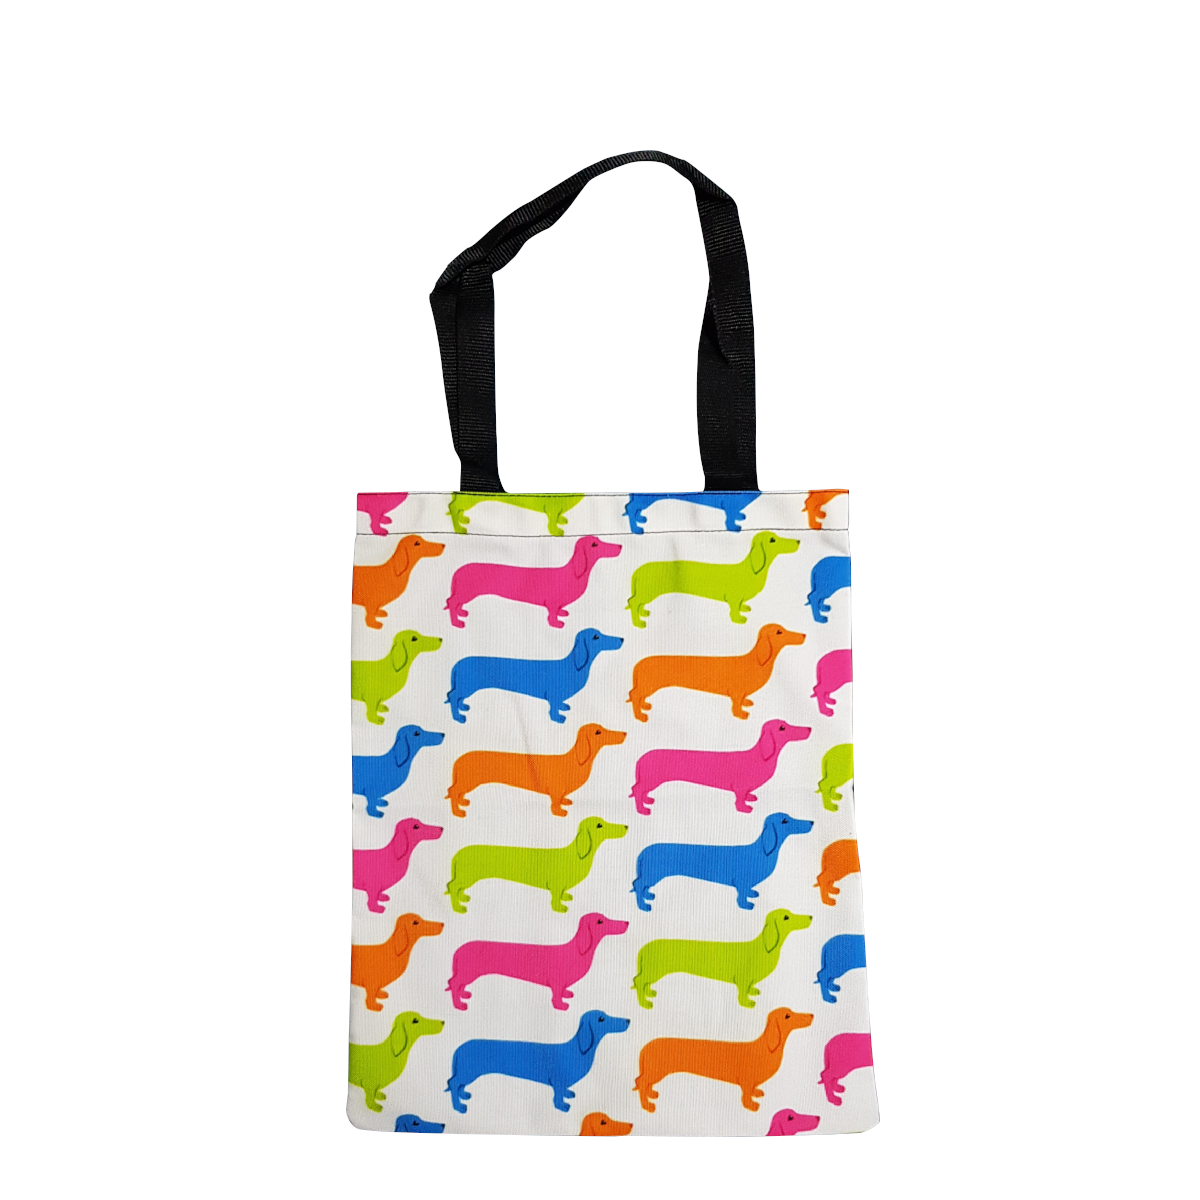 Dachshund Tote - White Colourful